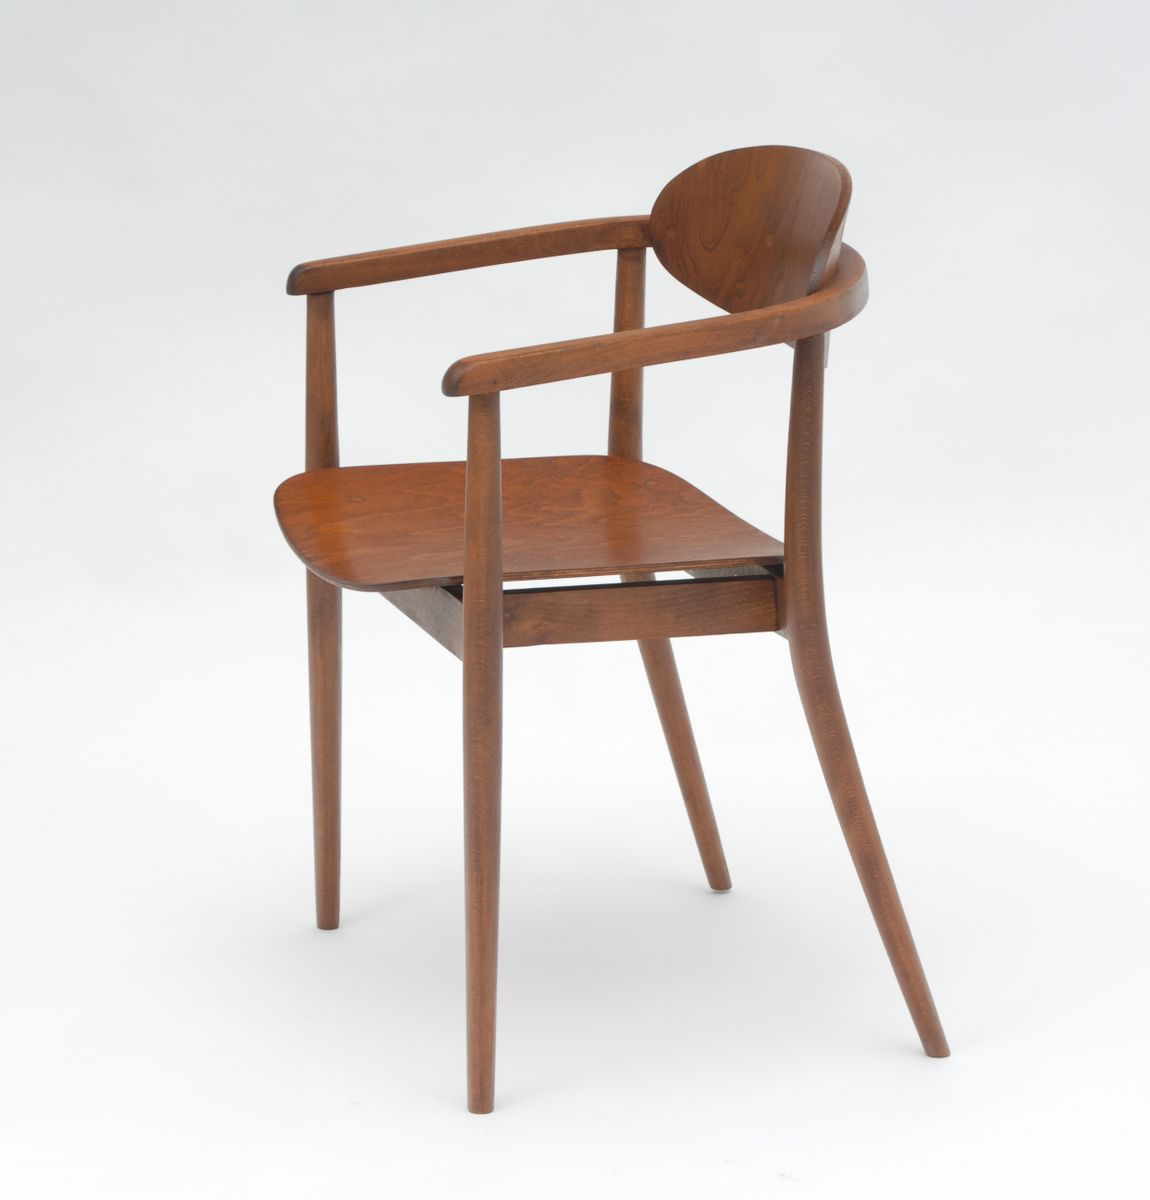 Wooden chairs with armrest - Czech Wooden Chairs With Armrests From Ton 1965 Set Of 2